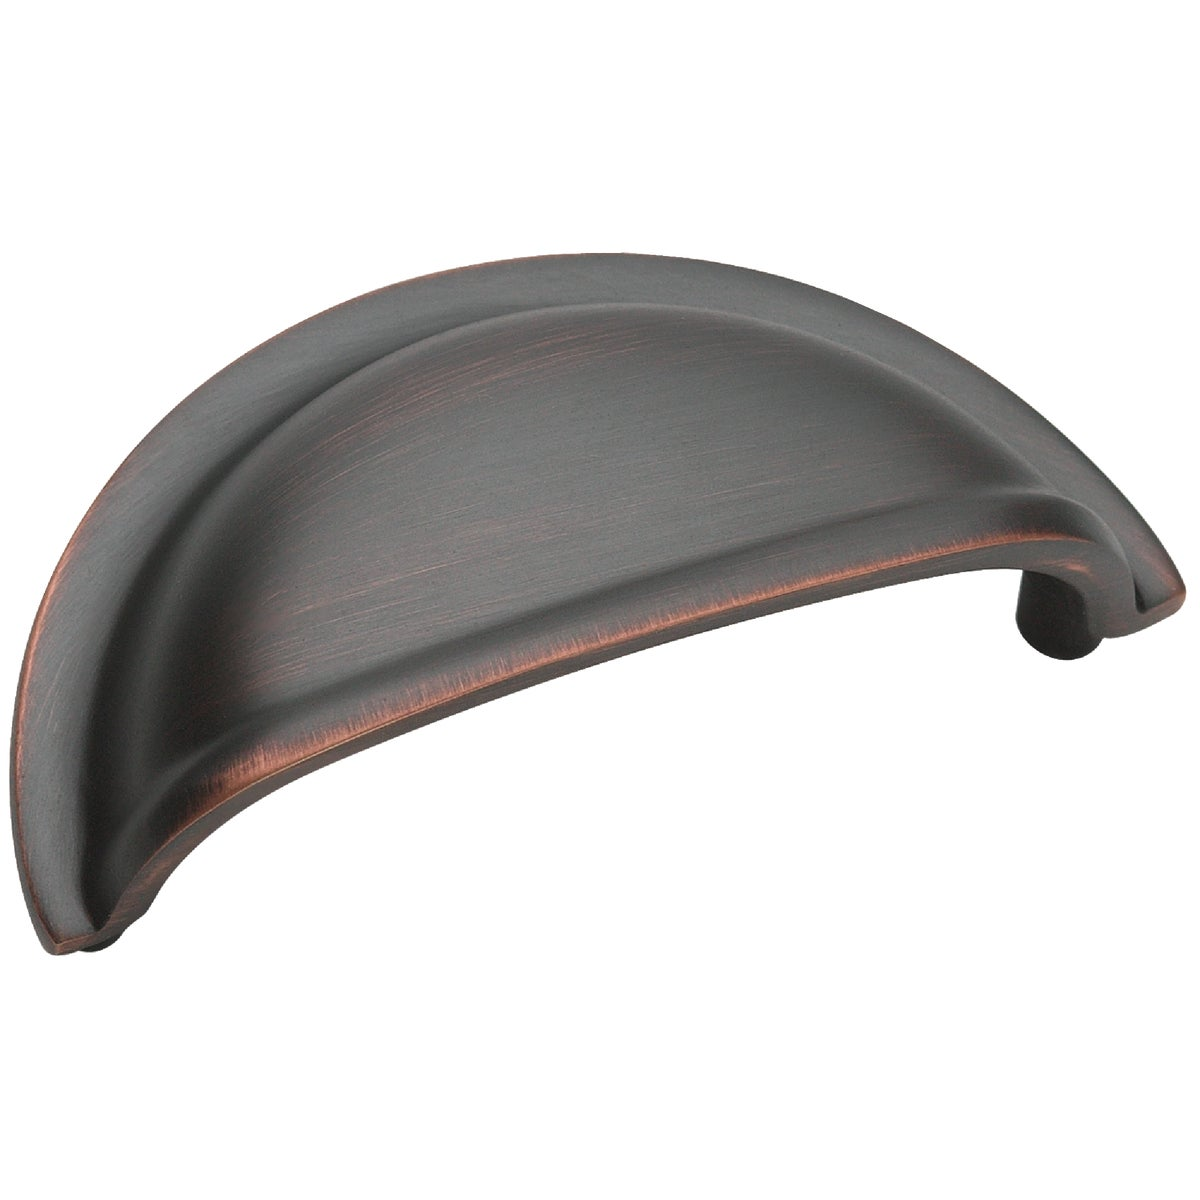 OIL-RUBBED BRONZE PULL